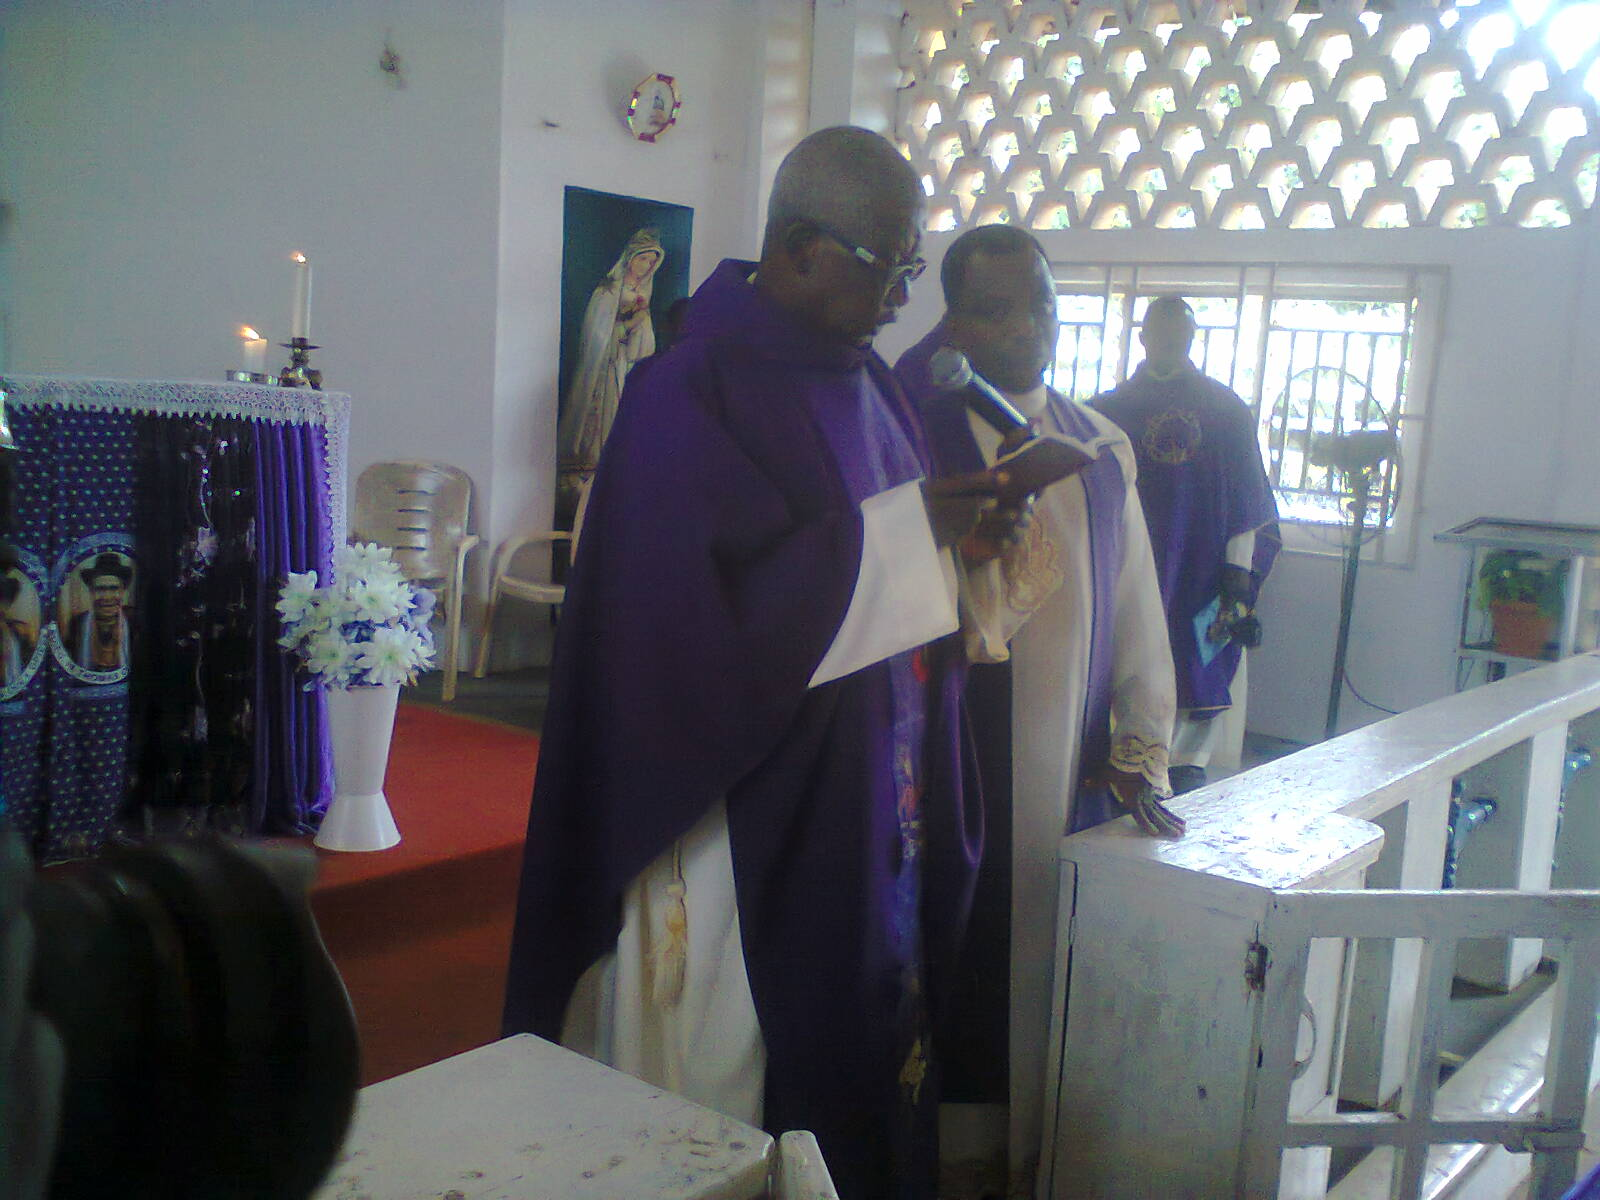 Vicar General preaching to the congregation